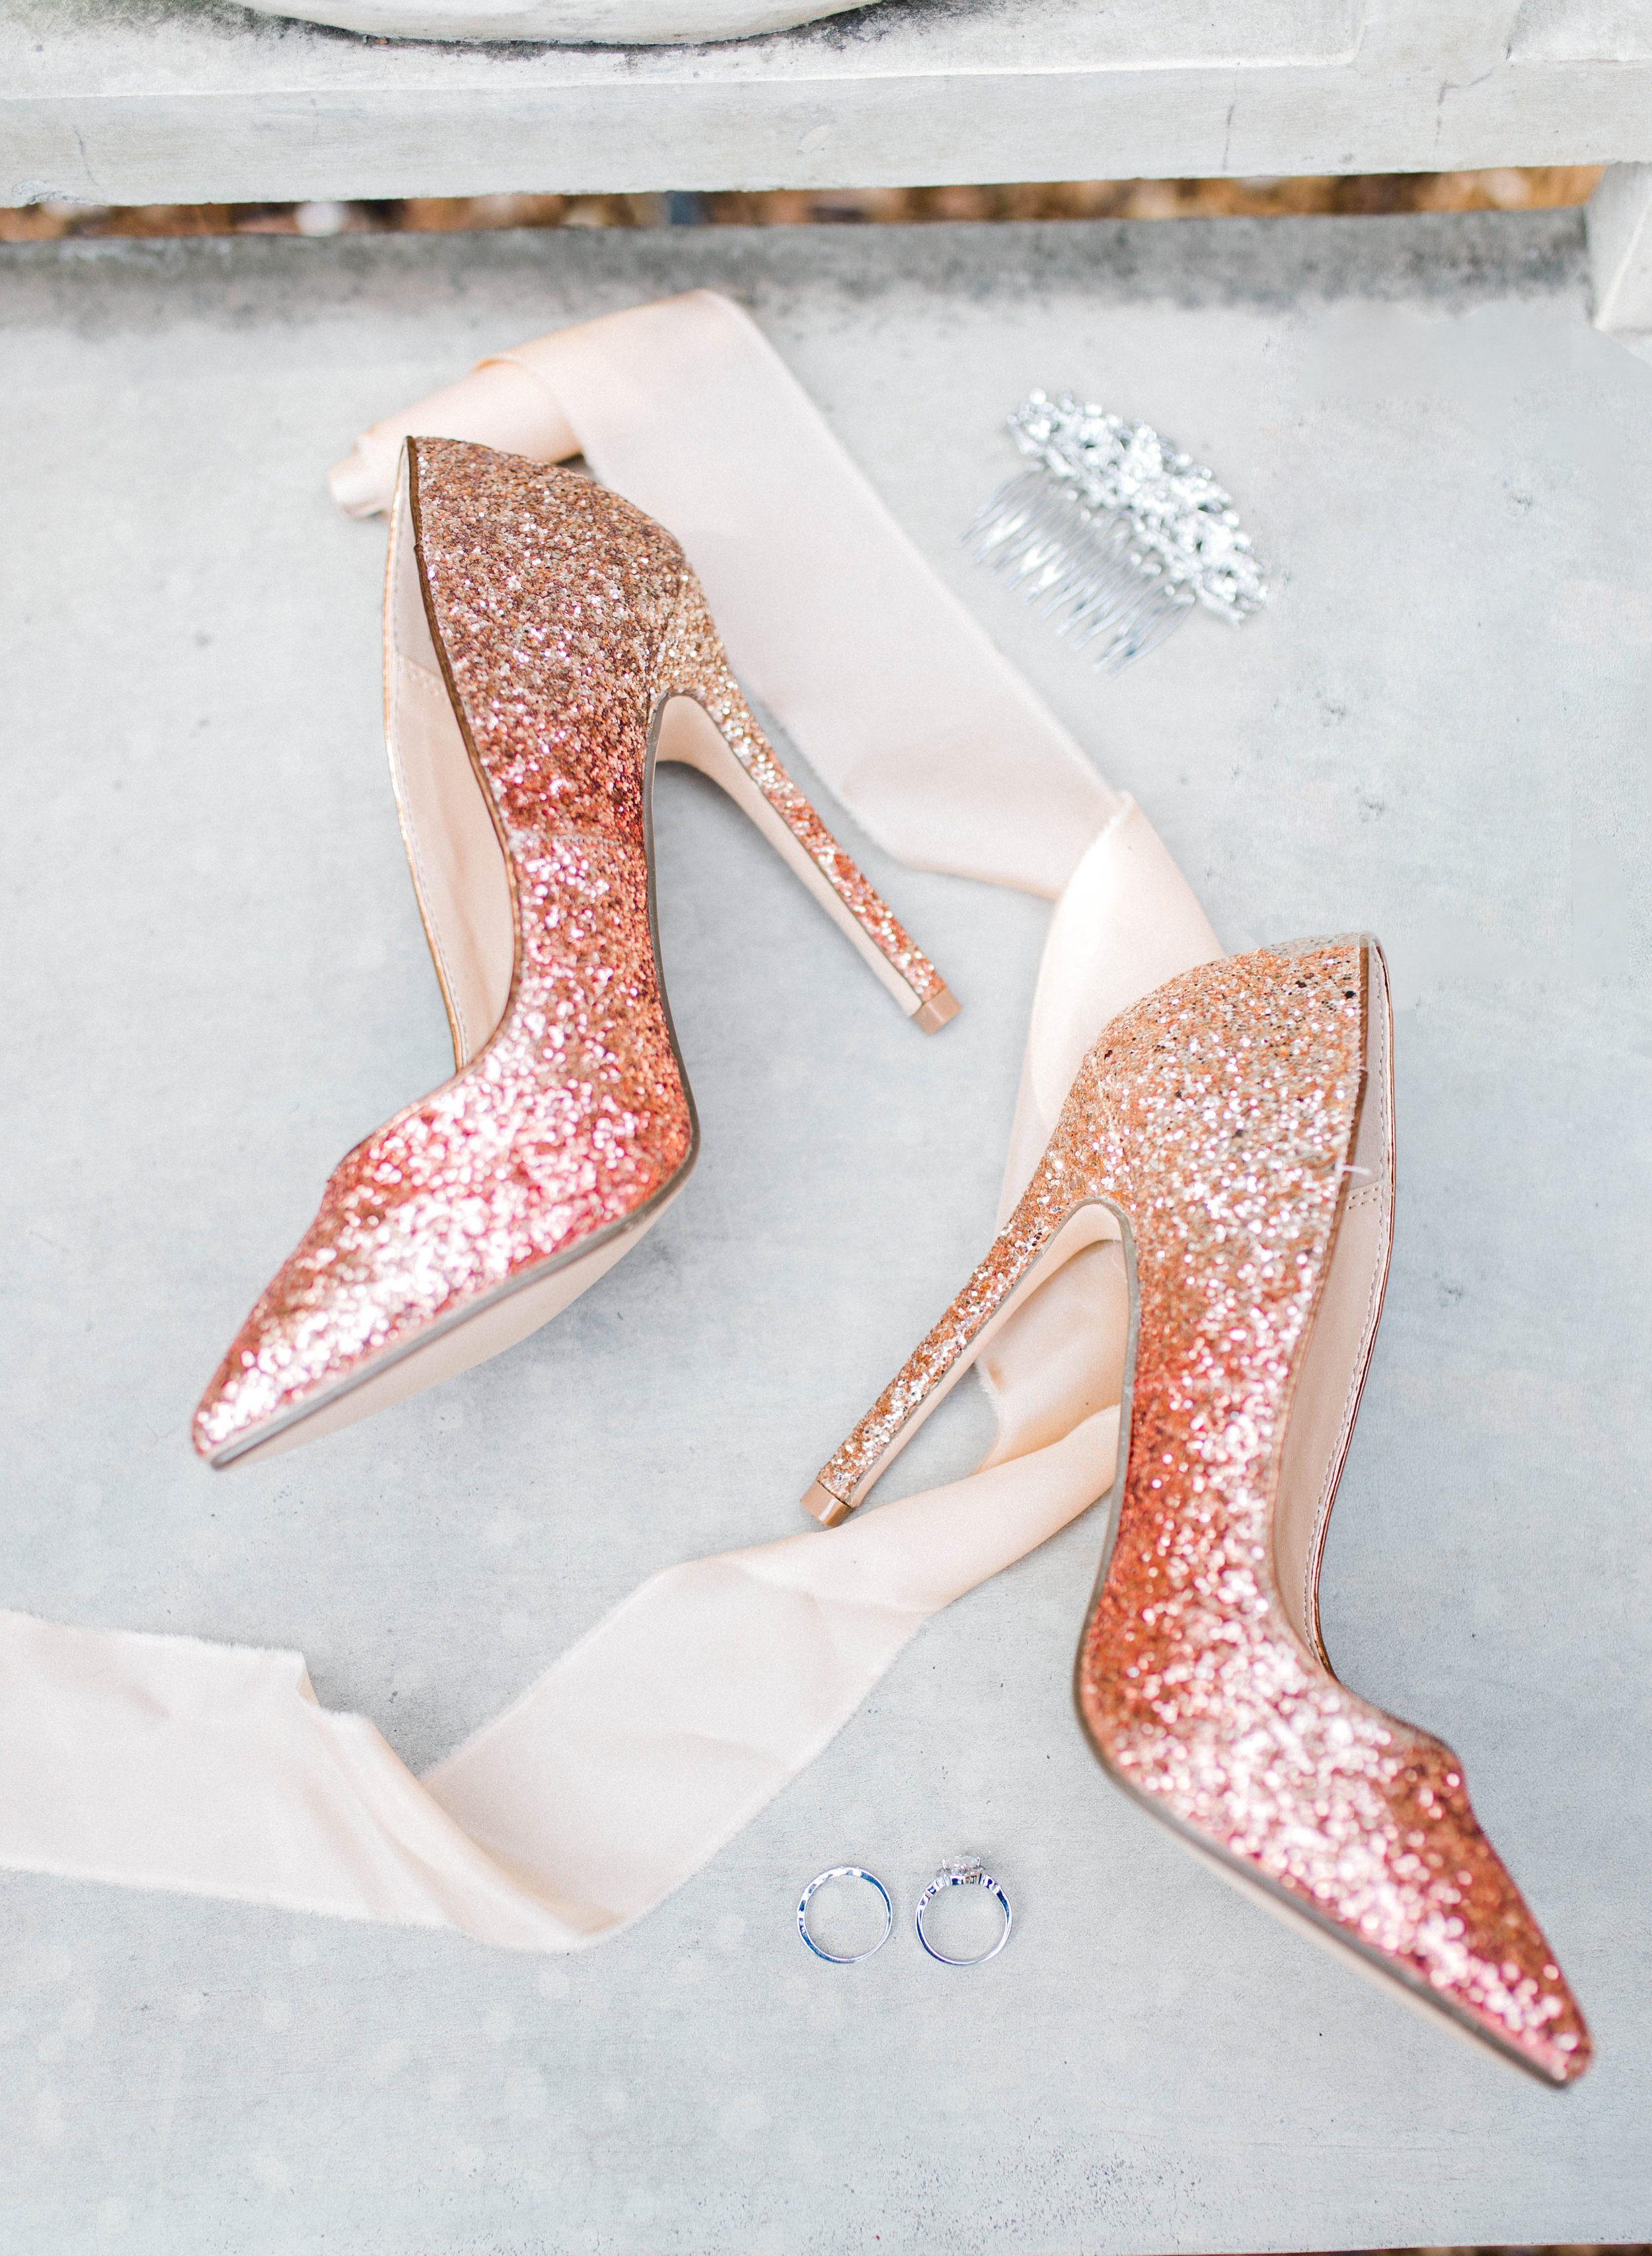 Rose gold wedding shoes and engagement rings by Tierney Riggs Photography